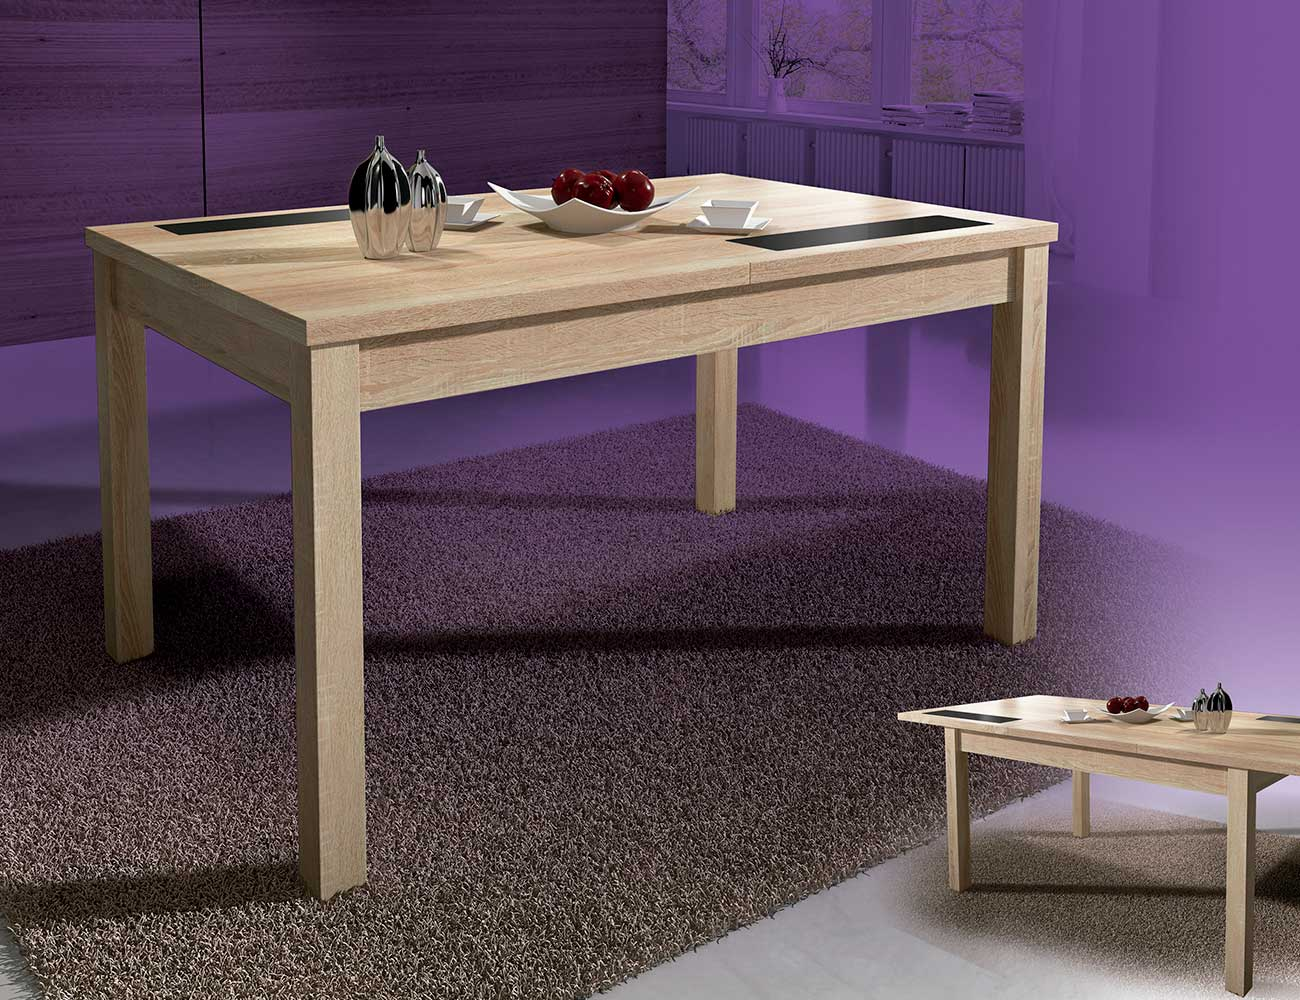 Mesa comedor extensible con cristables color cambrian (6463 ...